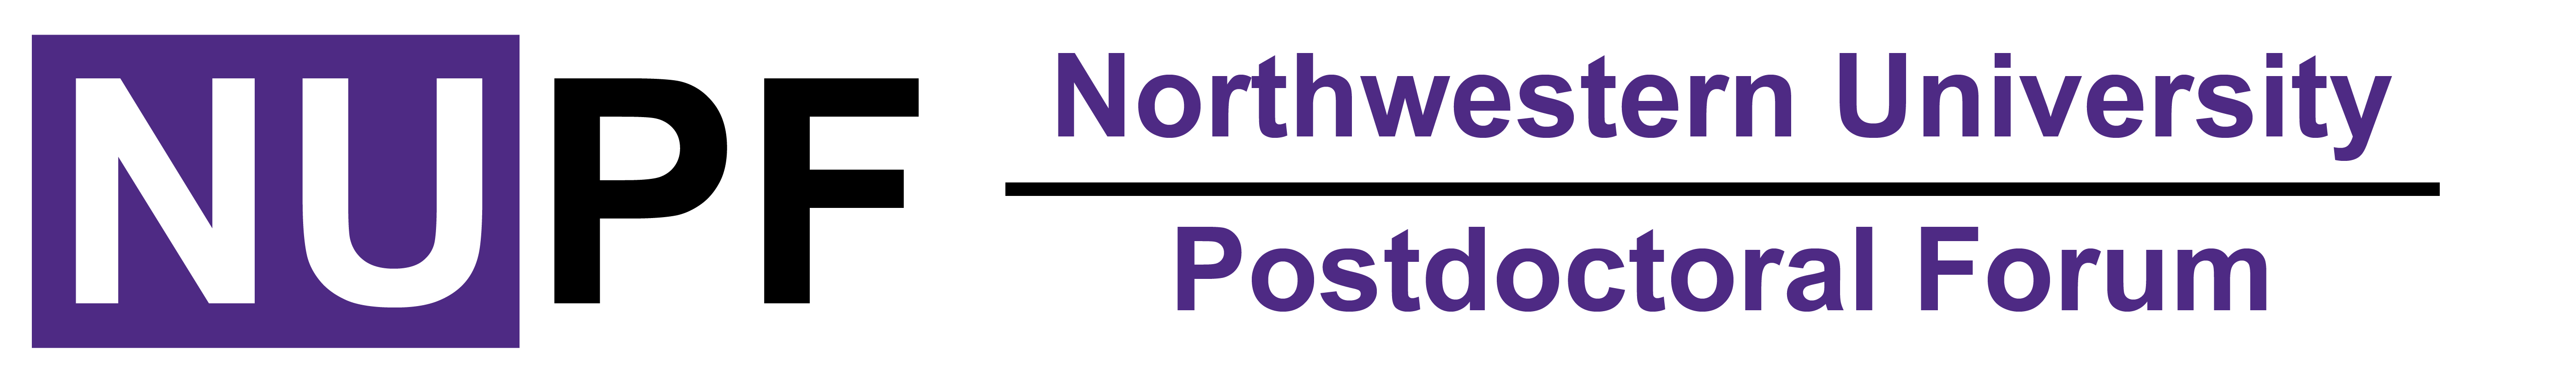 Northwestern University Postdoctoral Forum